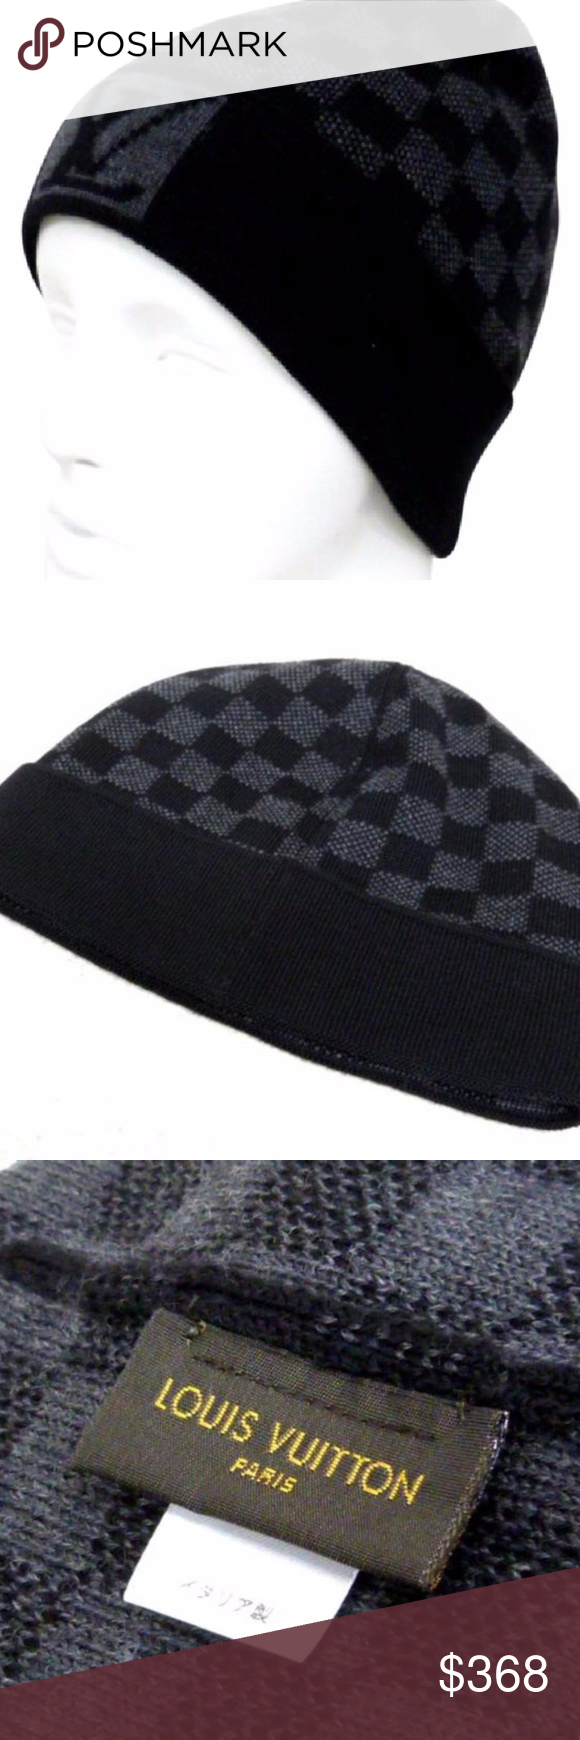 0466df33028 Louis Vuitton Damier Graphite Beanie 223669 OVERALL EXCELLENT+ CONDITION (  9.25 10 or A+ )